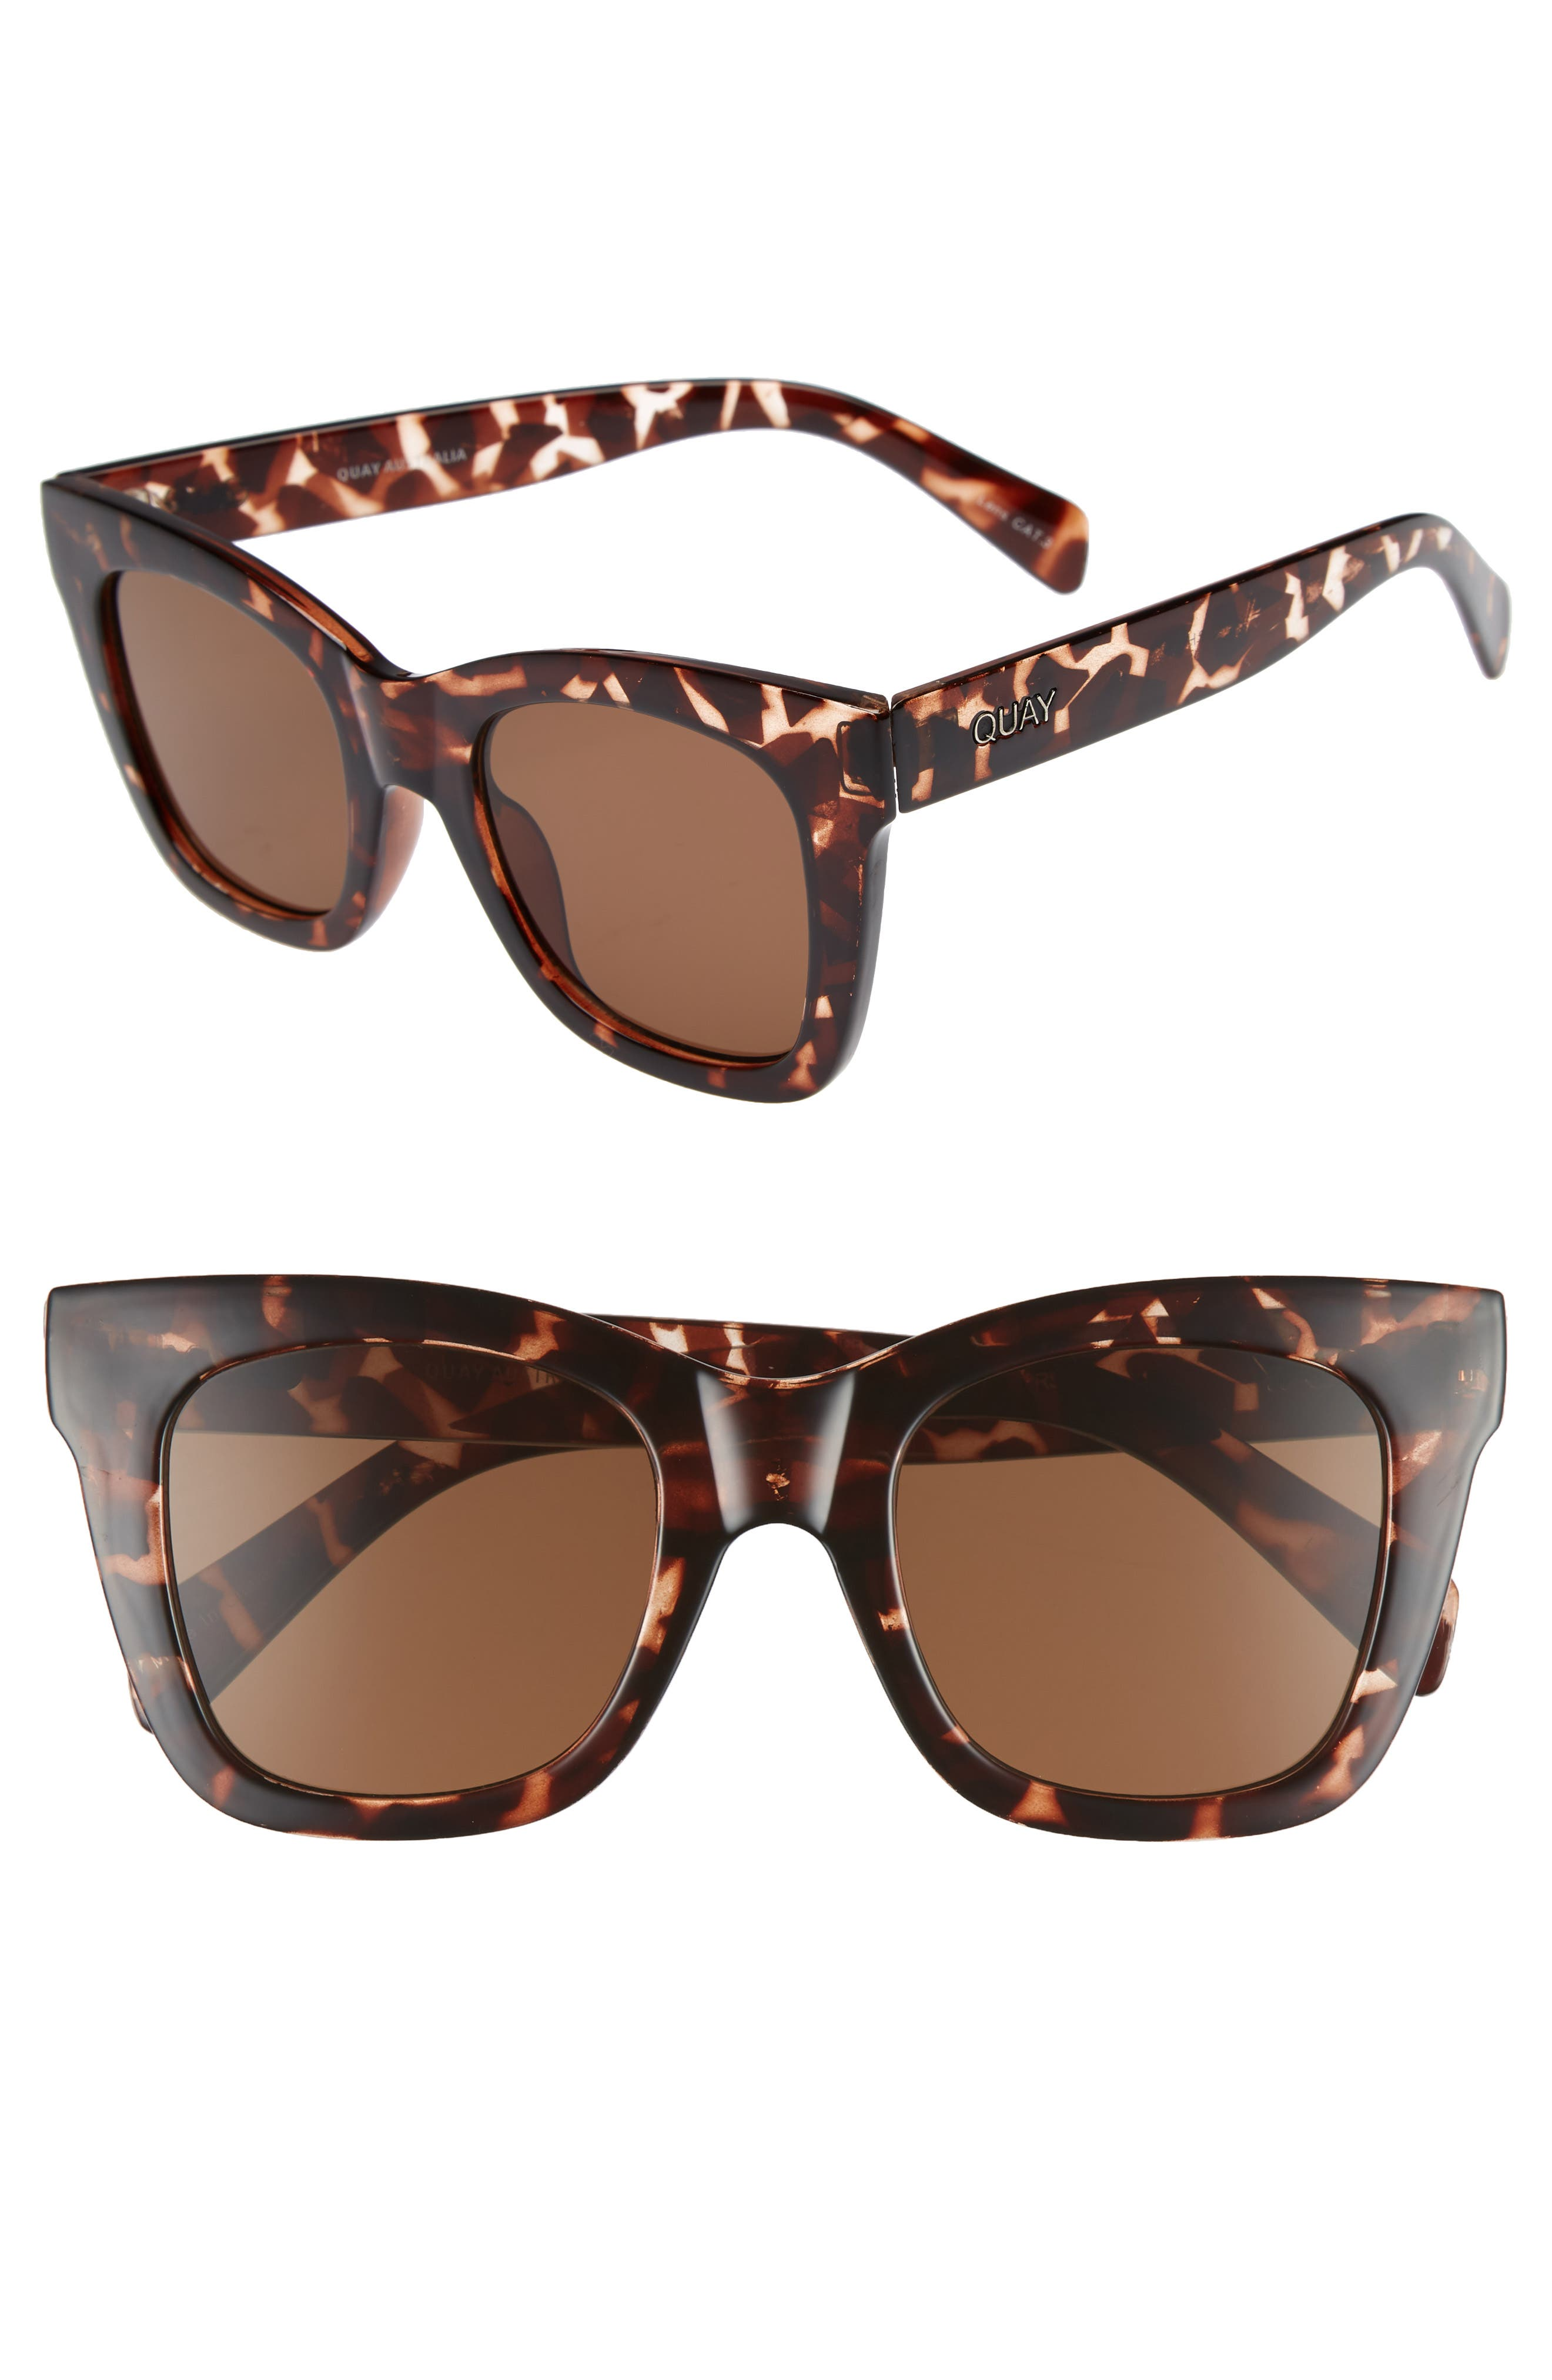 After Hours 50mm Square Sunglasses,                         Main,                         color, TORT / BROWN